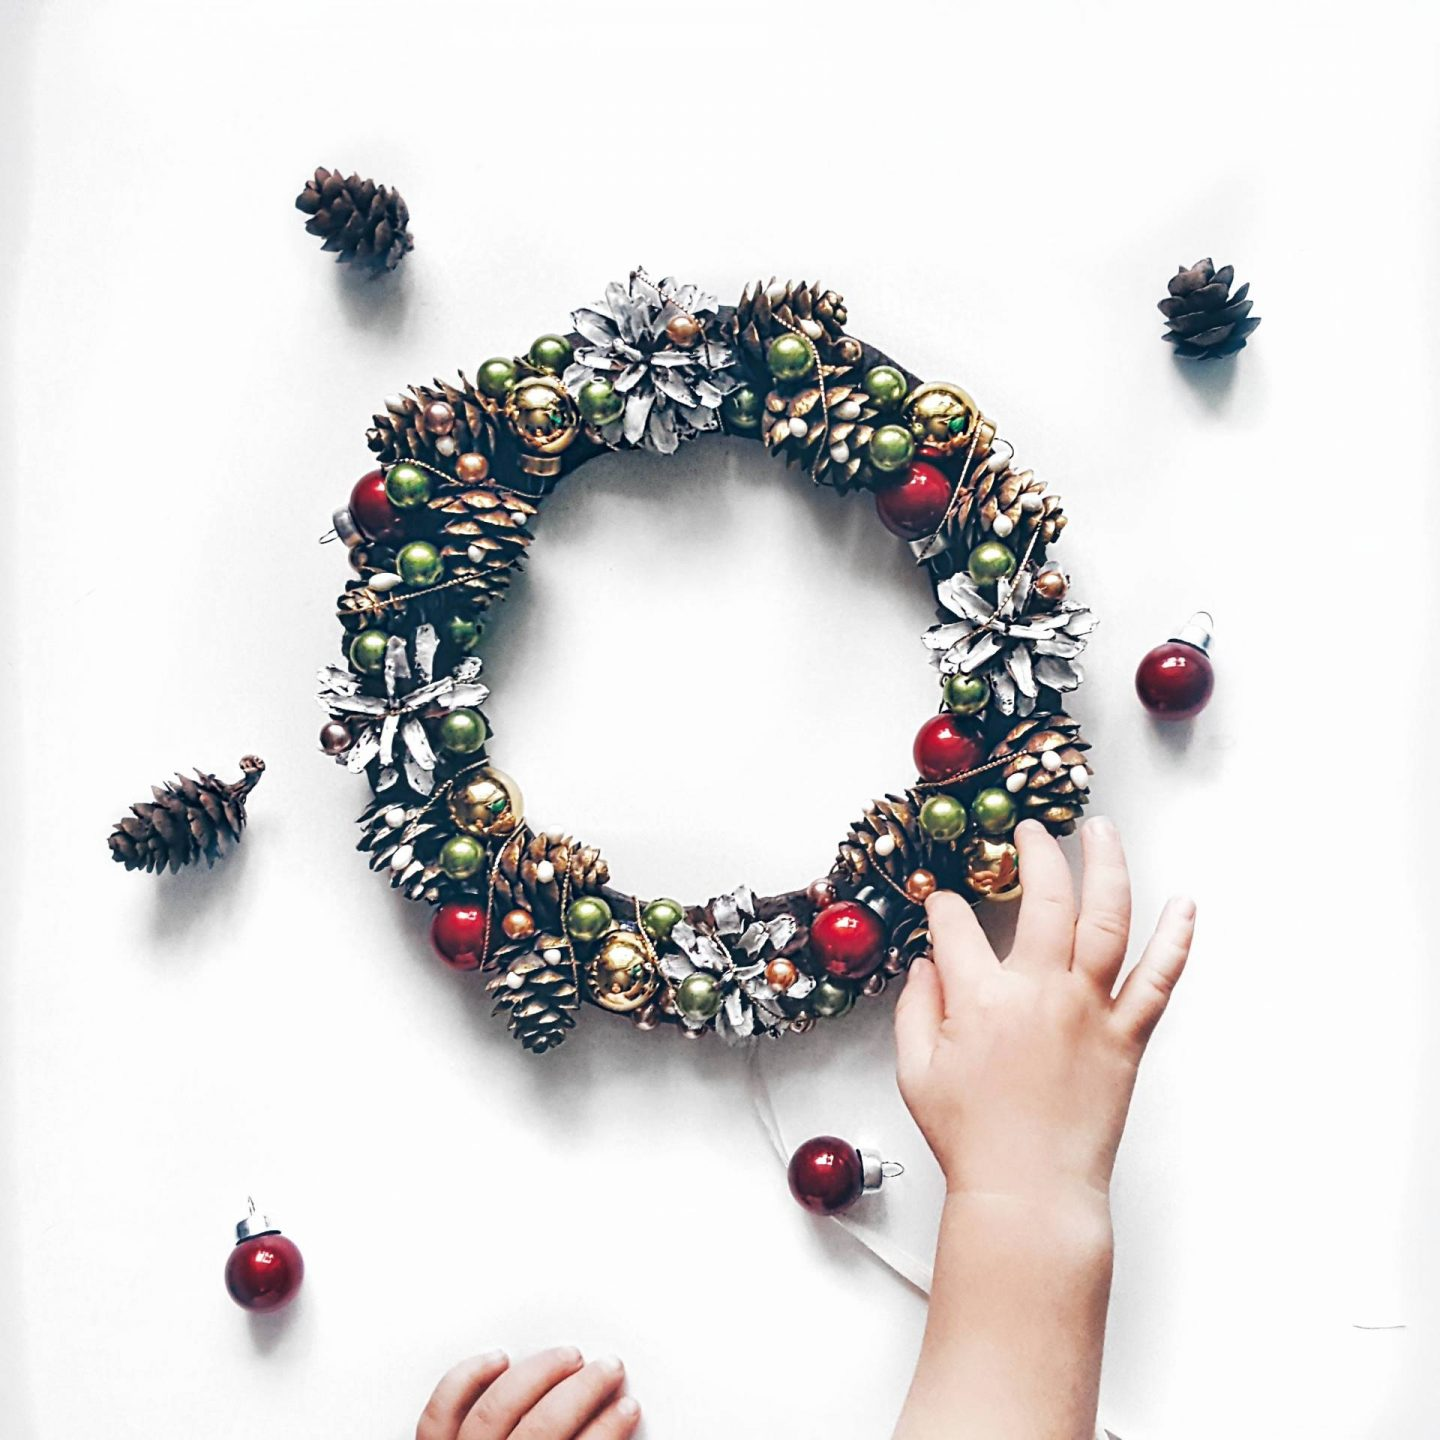 Top tips for making a festive wreath, tips for making a festive wreath